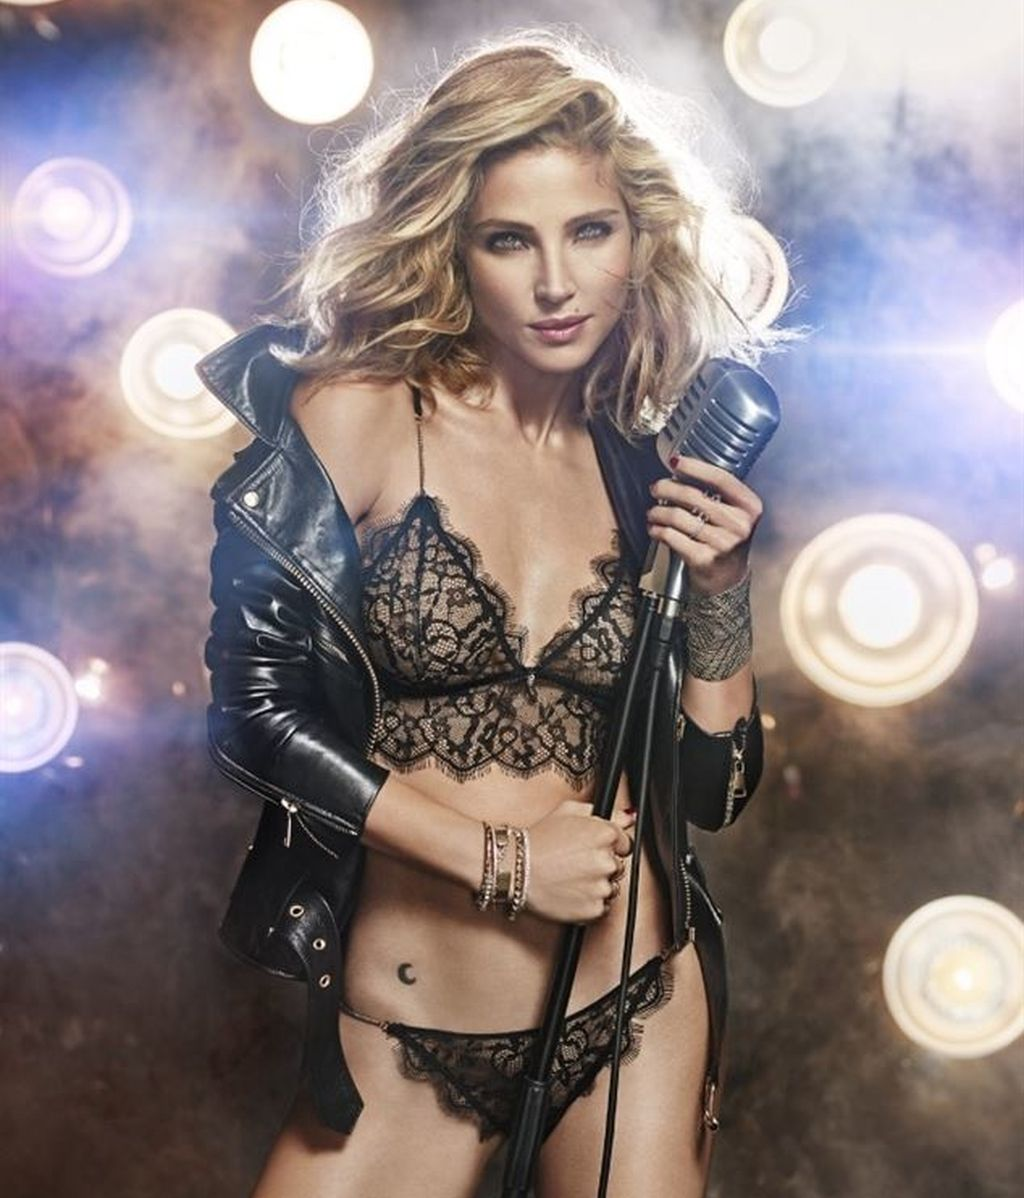 Elsa Pataky (Campaña de Women's Secret)